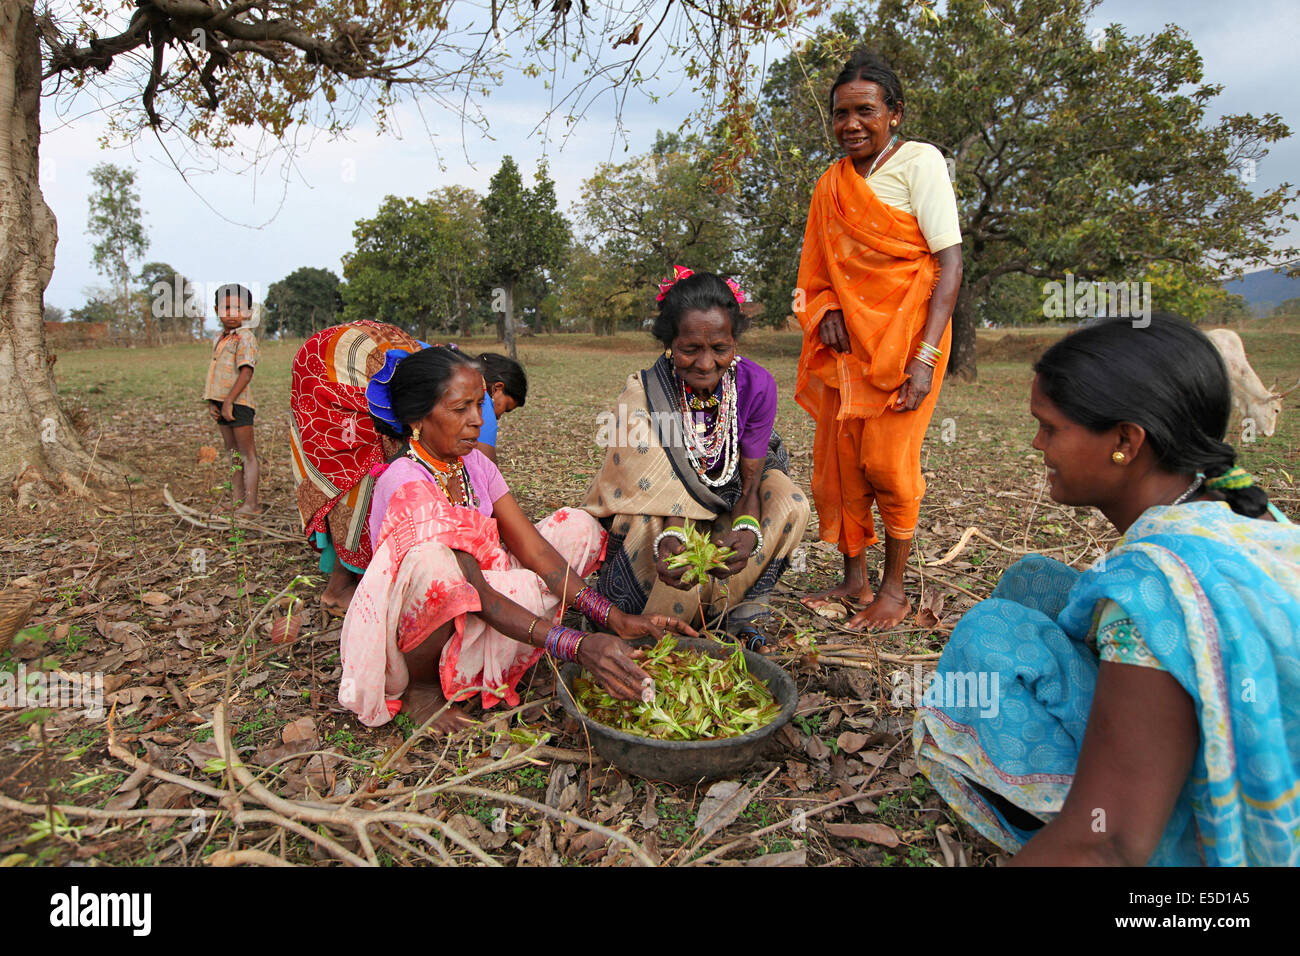 Tribal women collecting leaves in the forest, Baiga tribe, Karangra Village, Chattisgadh, India - Stock Image